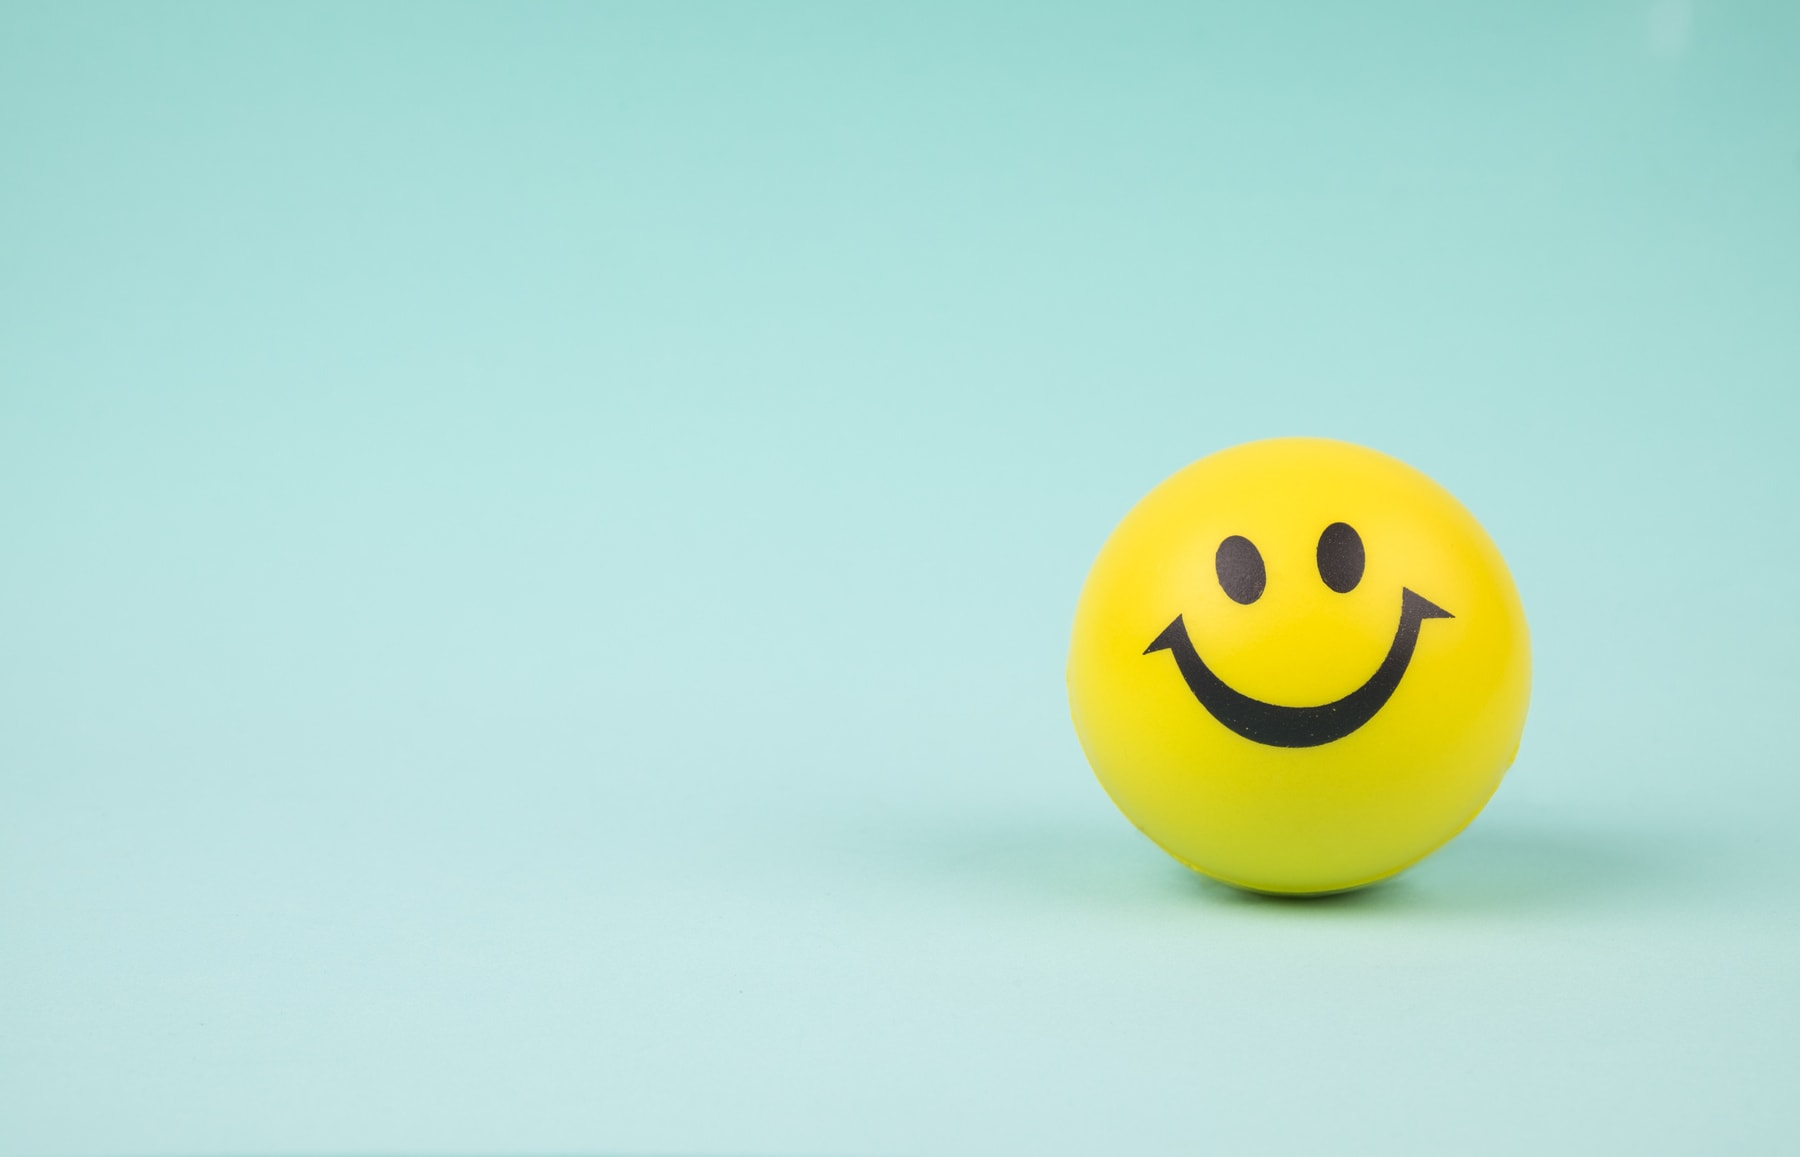 Yellow laughing happy smile face. Smiley face ball on background sweet retro vintage color.